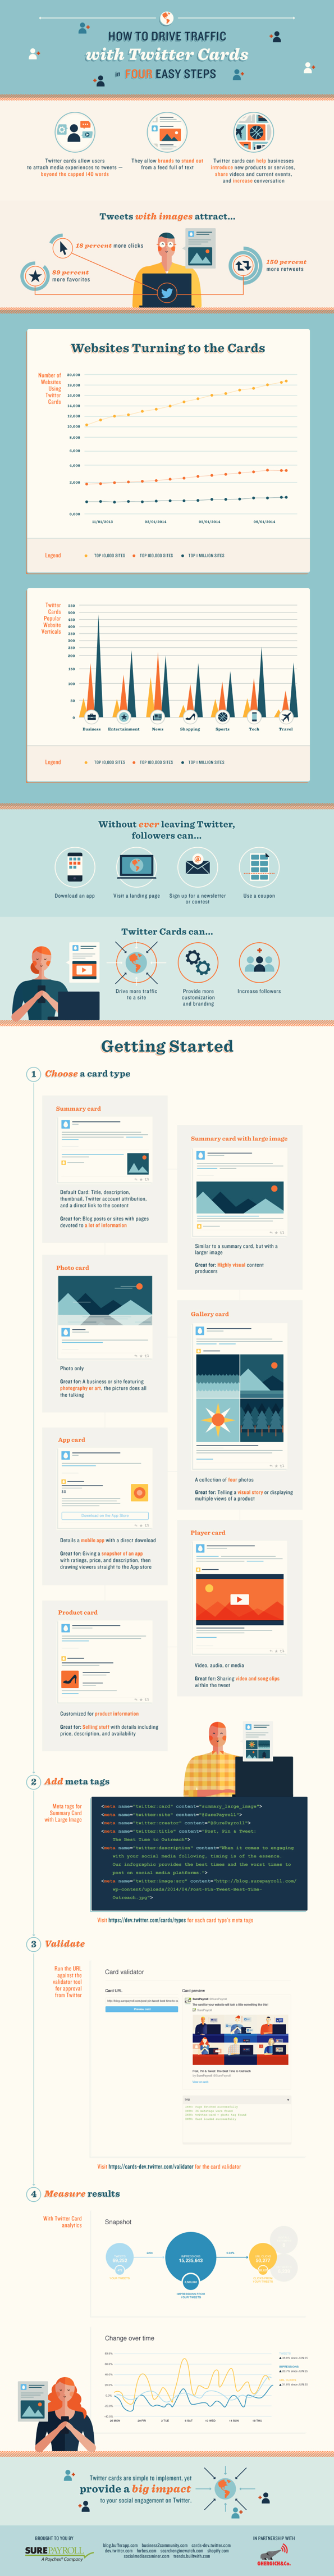 Twitter Cards Review How to Increase Traffic to Your Website Infographic image